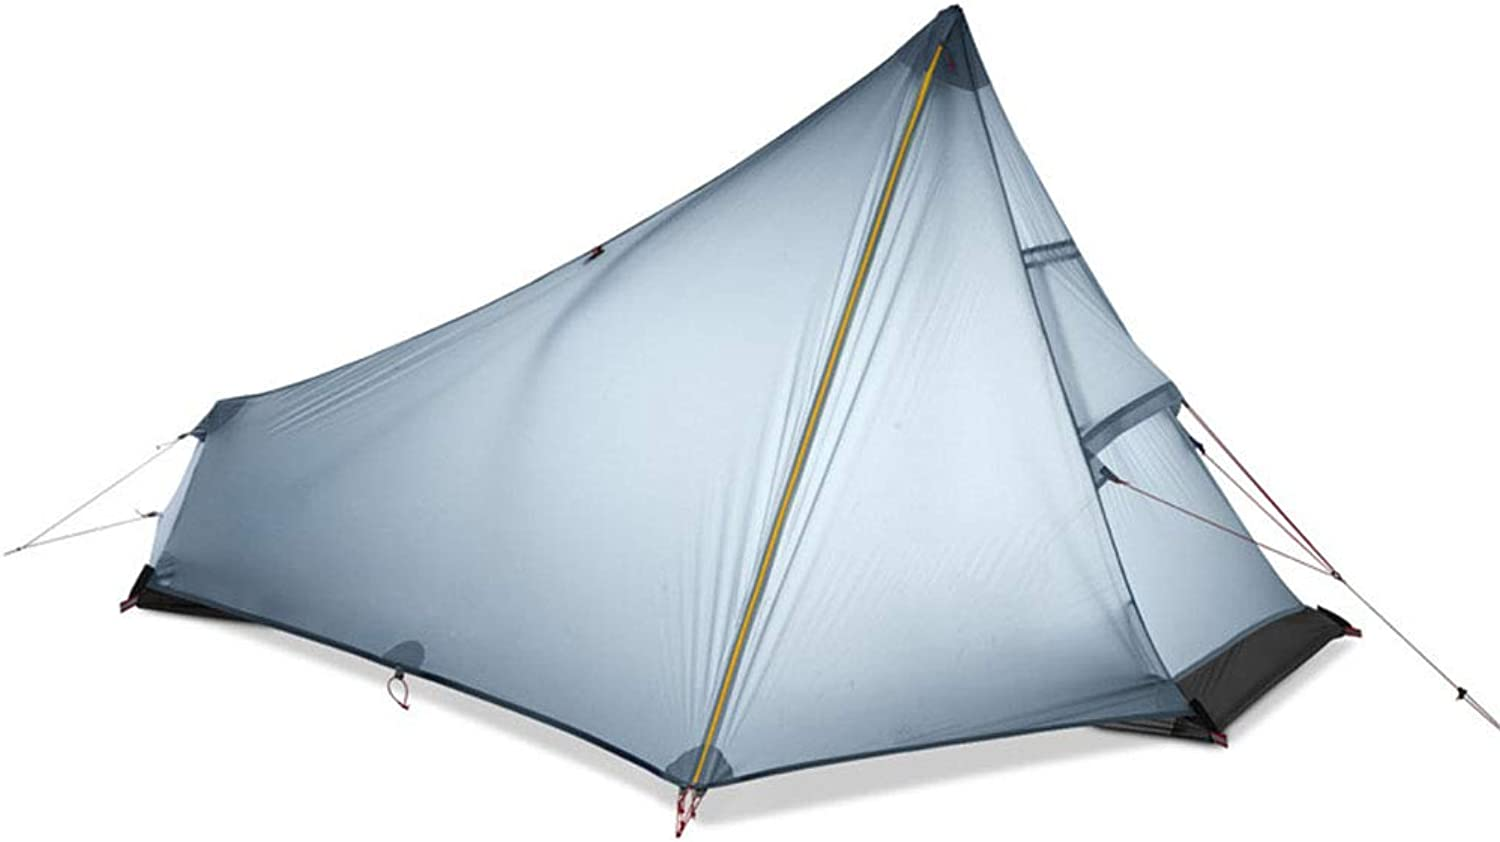 Spacious,Anti-UV Zelt, Ultralight Silicon Coated Fabric no Rod Zents Single Person Light Weight Outdoor Camping Waterproof Zents,A,220  105  125CM